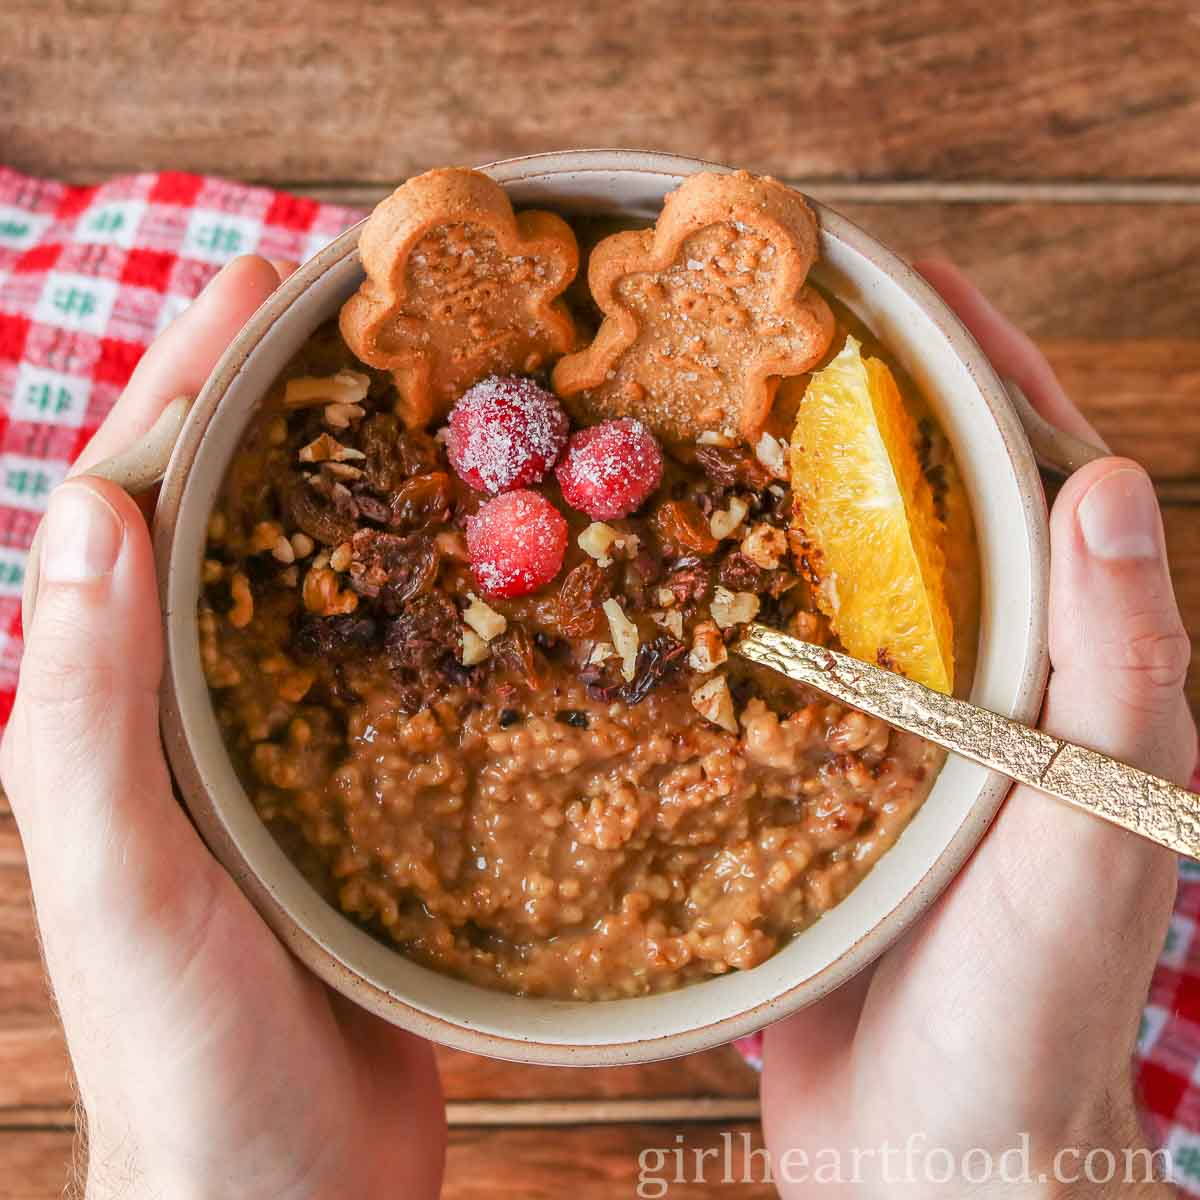 Someone holding up a festive bowl of gingerbread steel-cut oats.